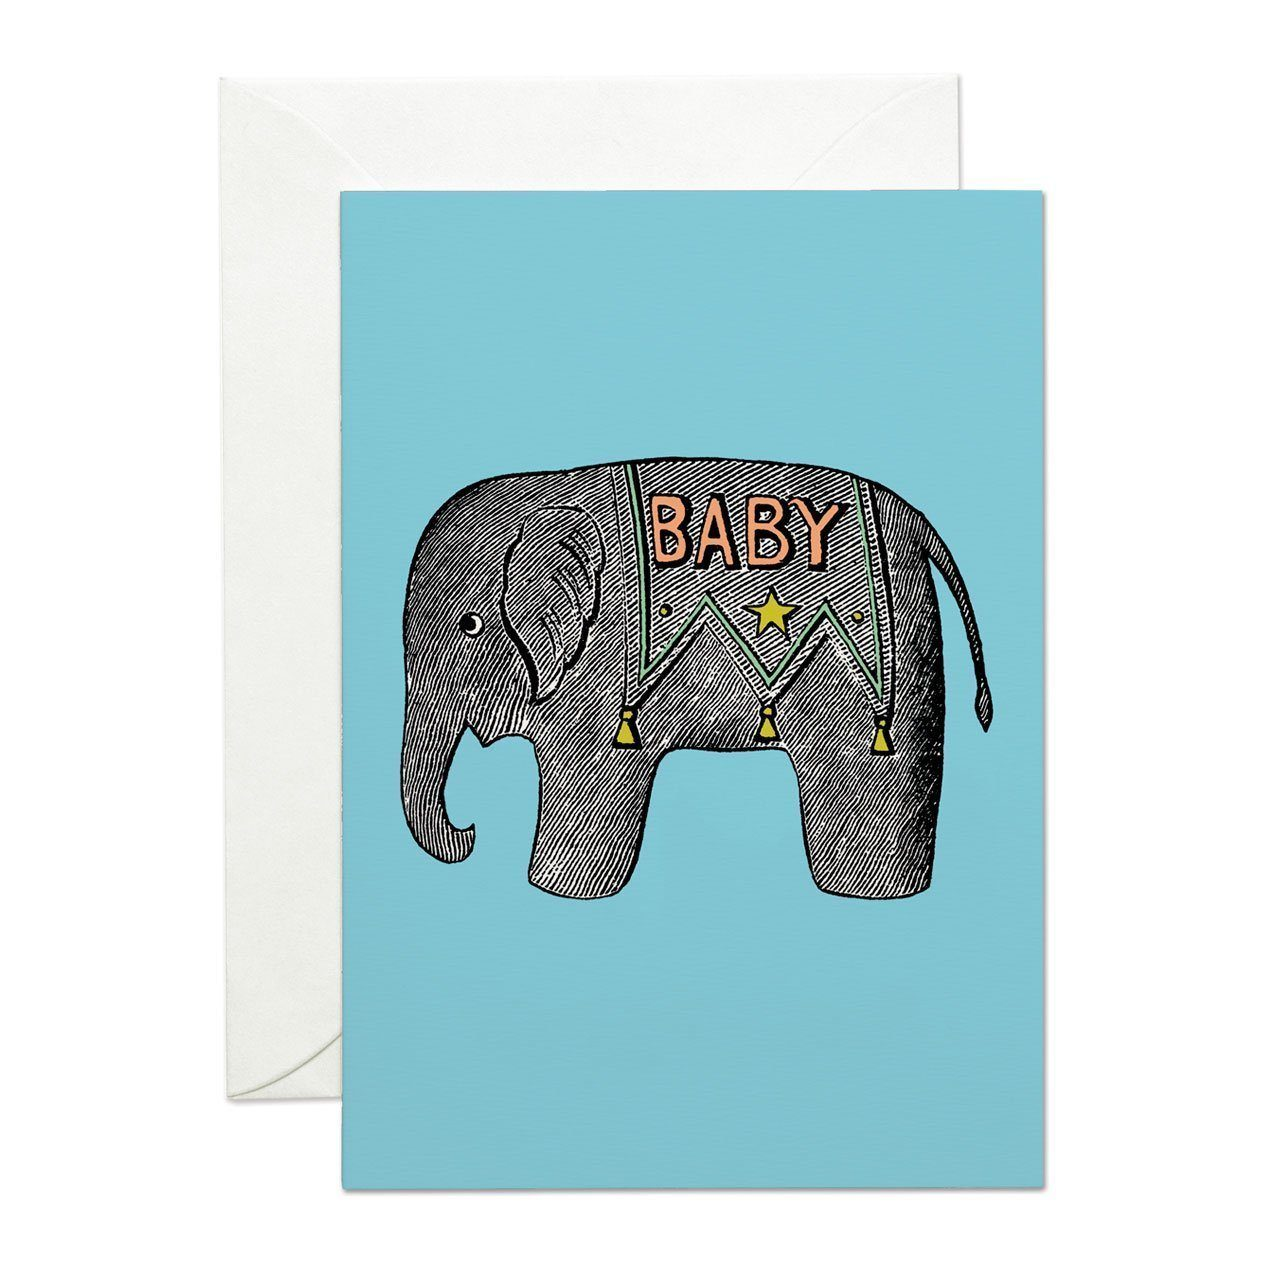 New baby greeting cards unique cards chase and wonder baby elephant blue greeting card kristyandbryce Choice Image